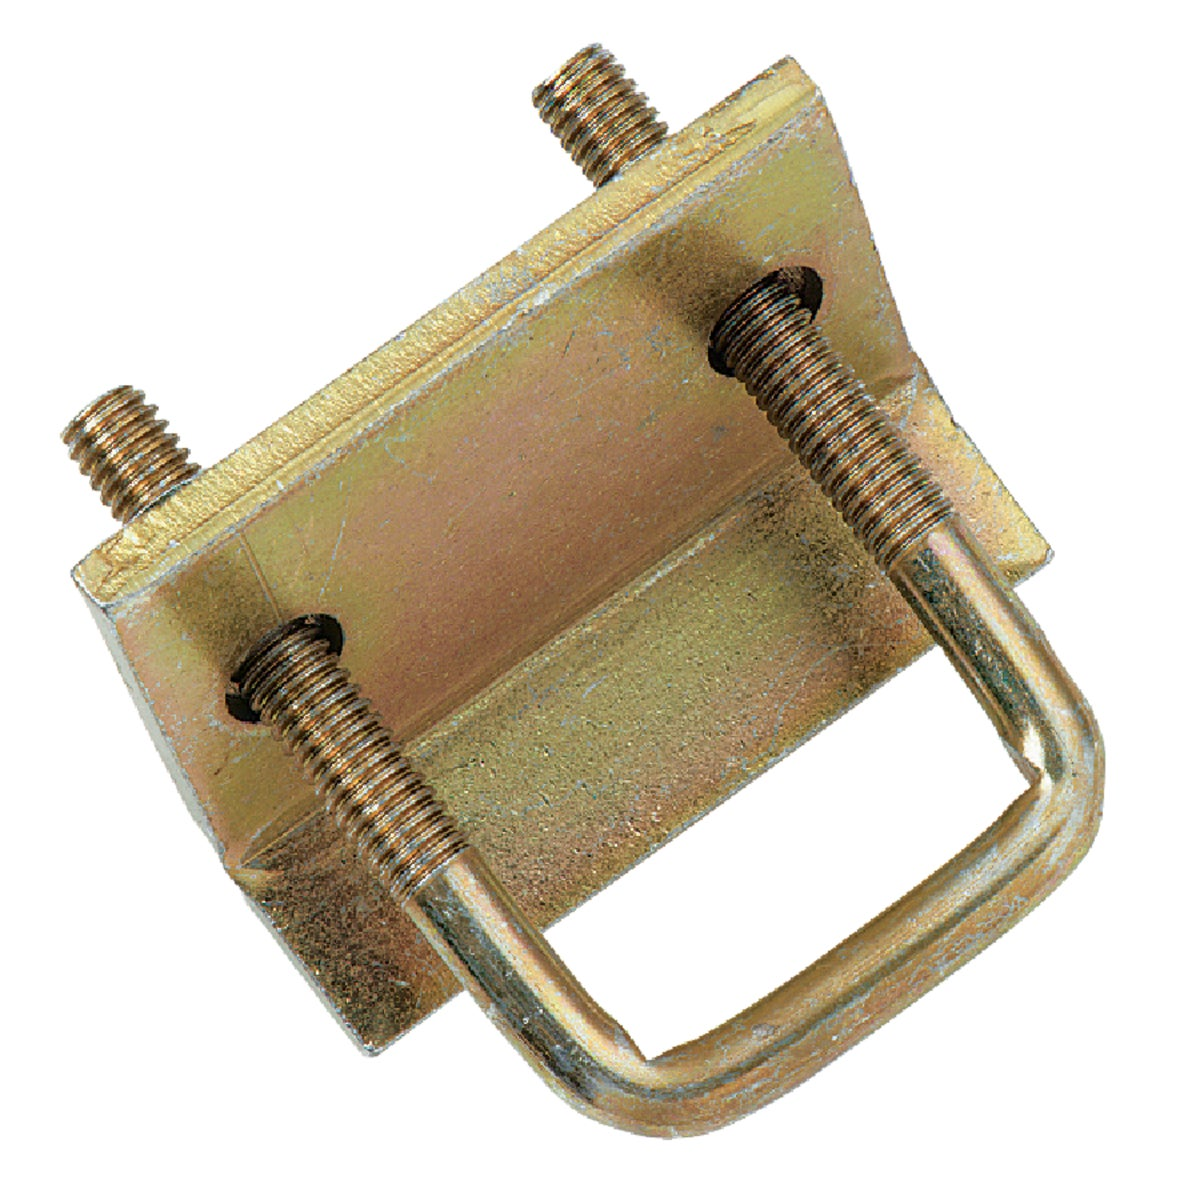 UNIV BEAM CLAMP